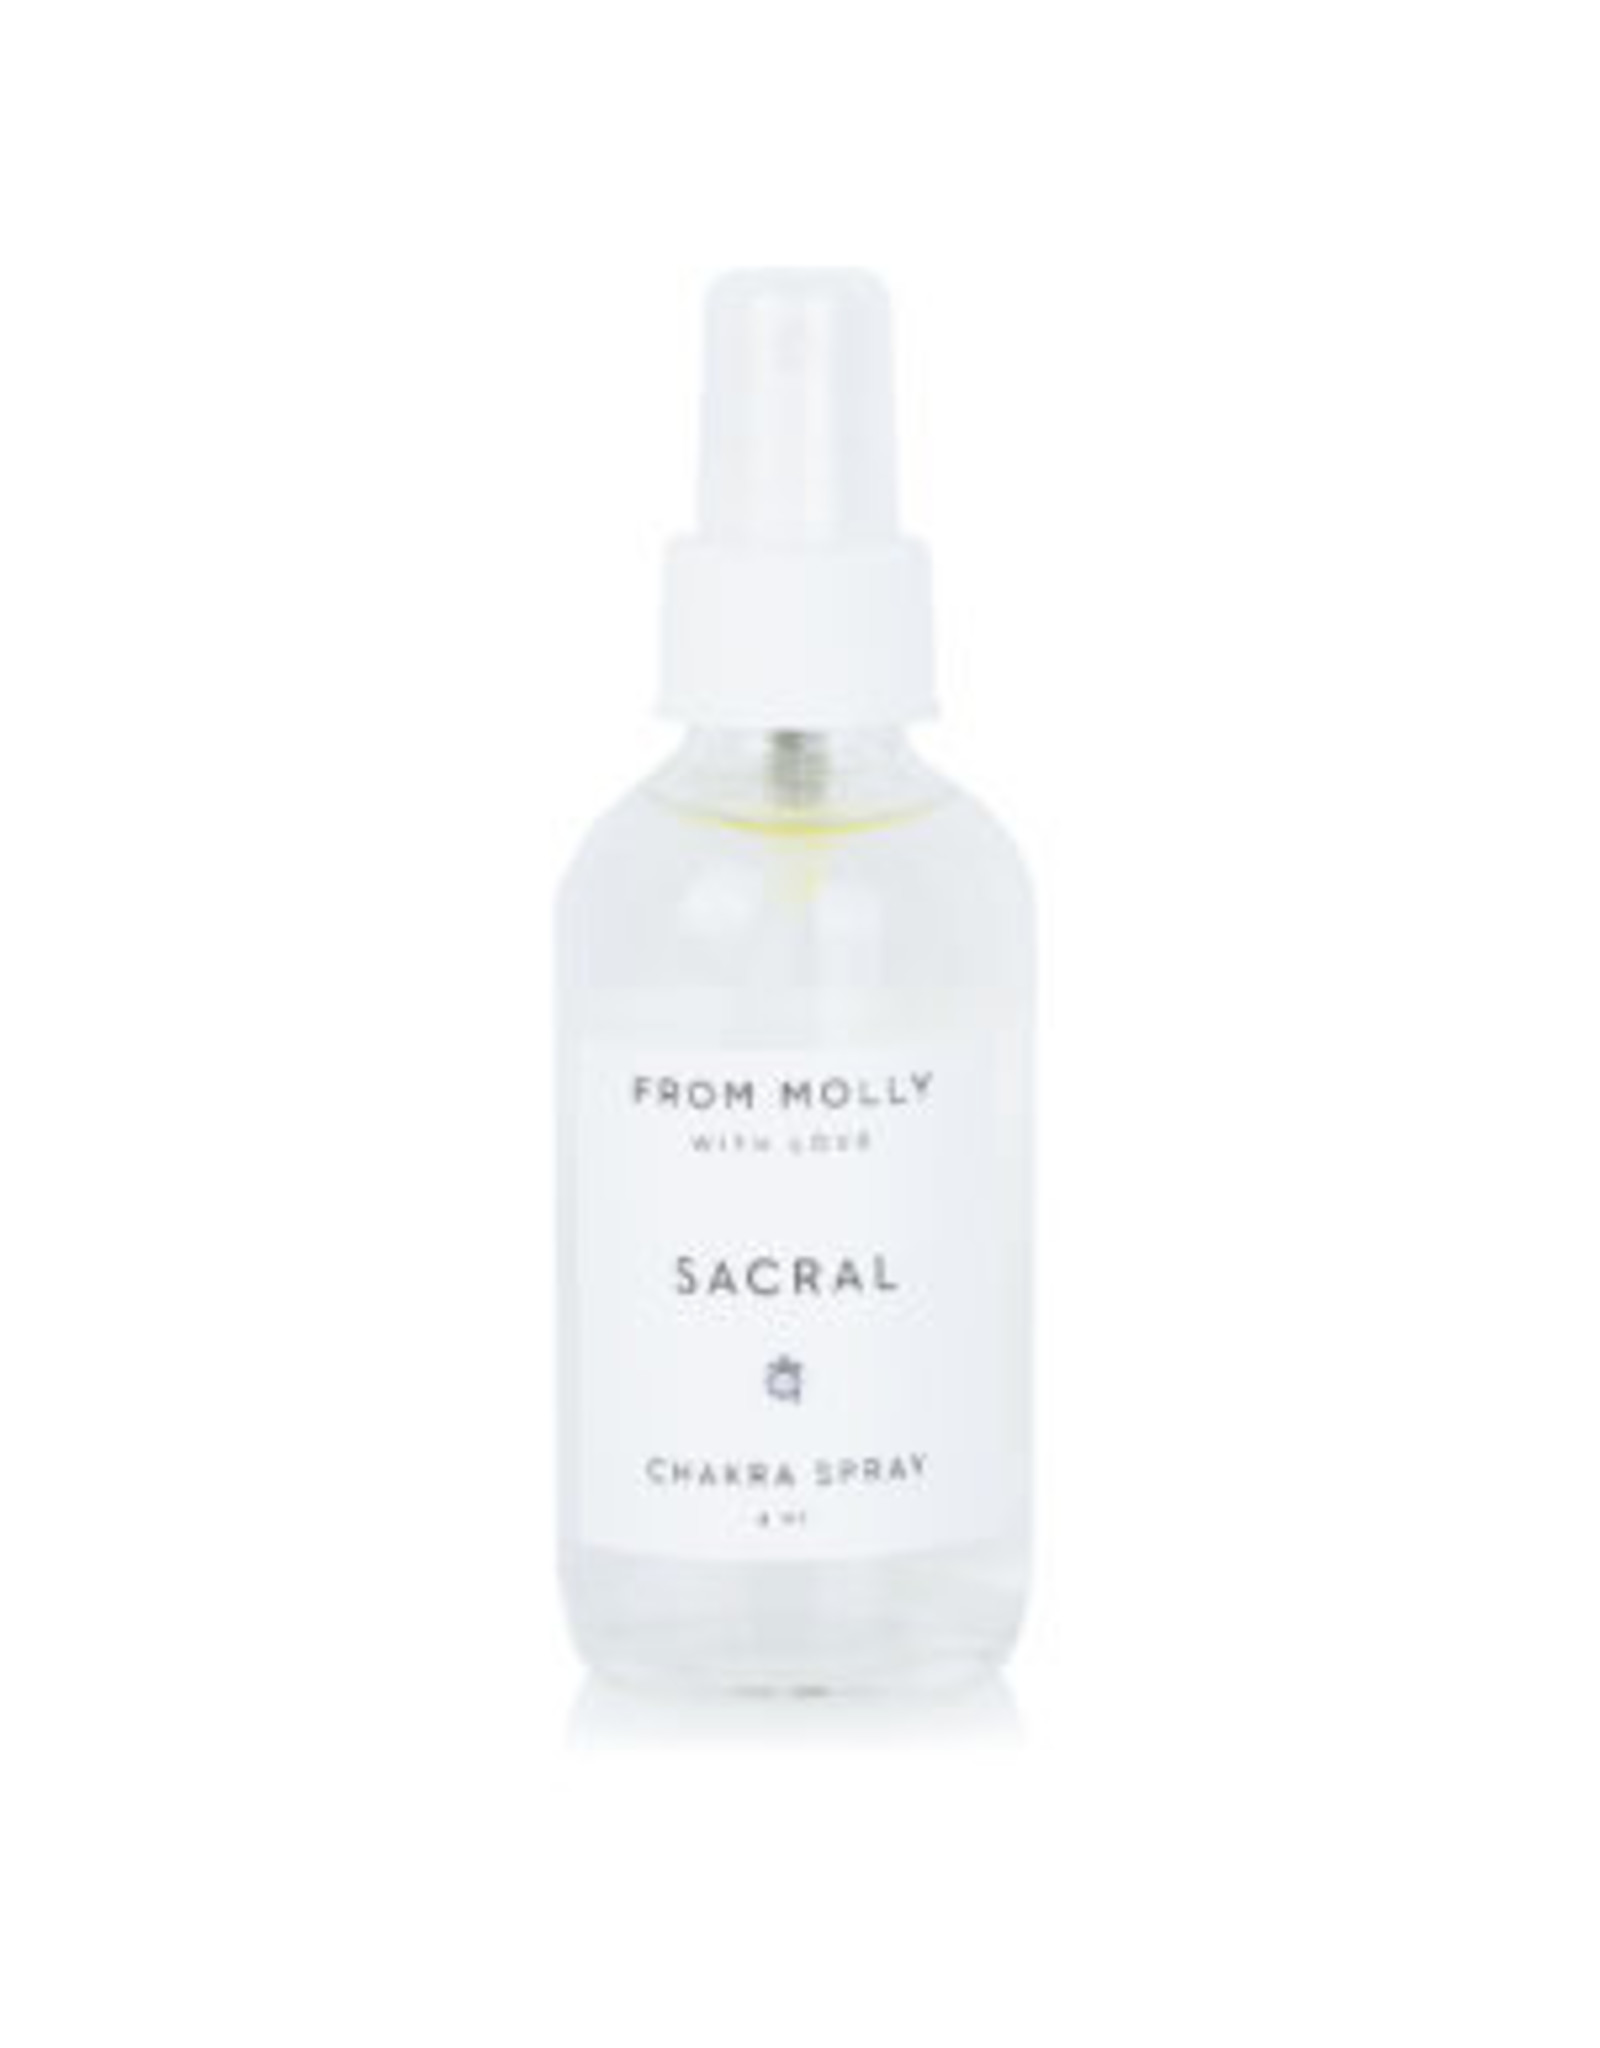 From Molly With Love - Chakra Spray/ Sacral